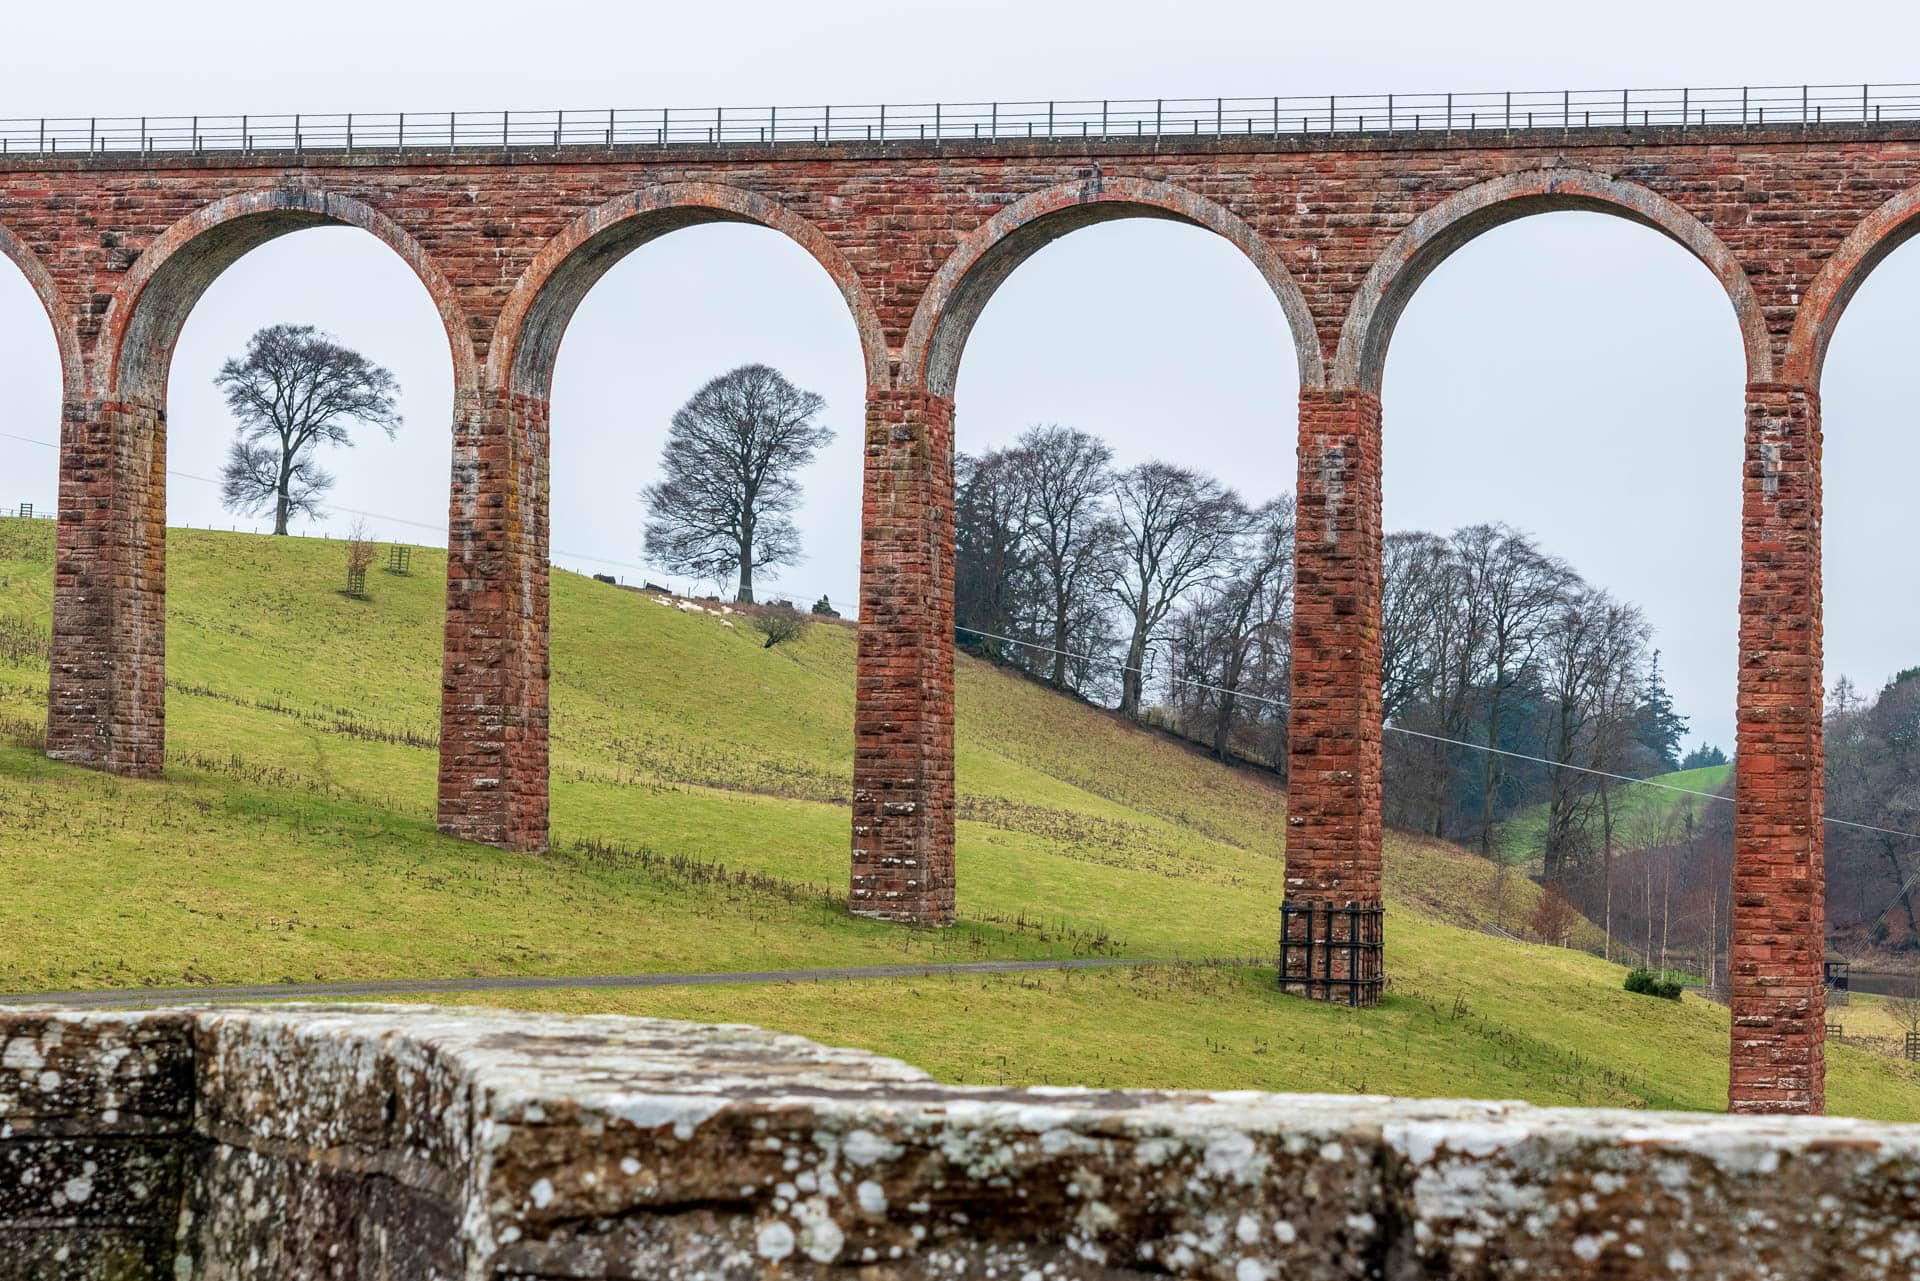 Leaderfoot Viaduct arhes and tress | f/8 1/25sec ISO-100 54mm